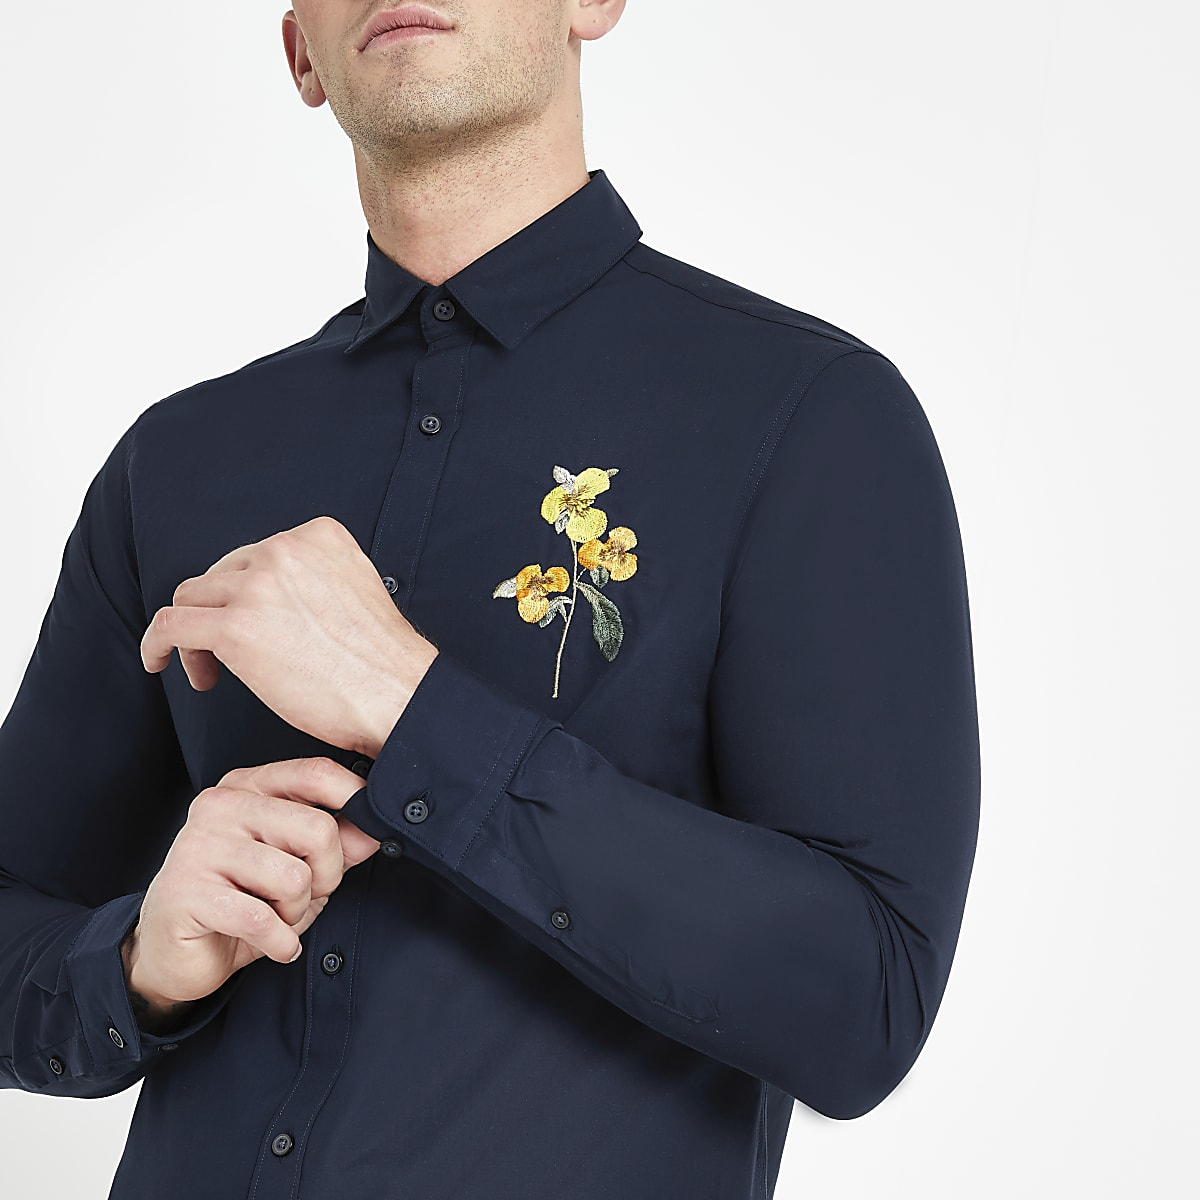 Selected Homme navy floral regular fit shirt